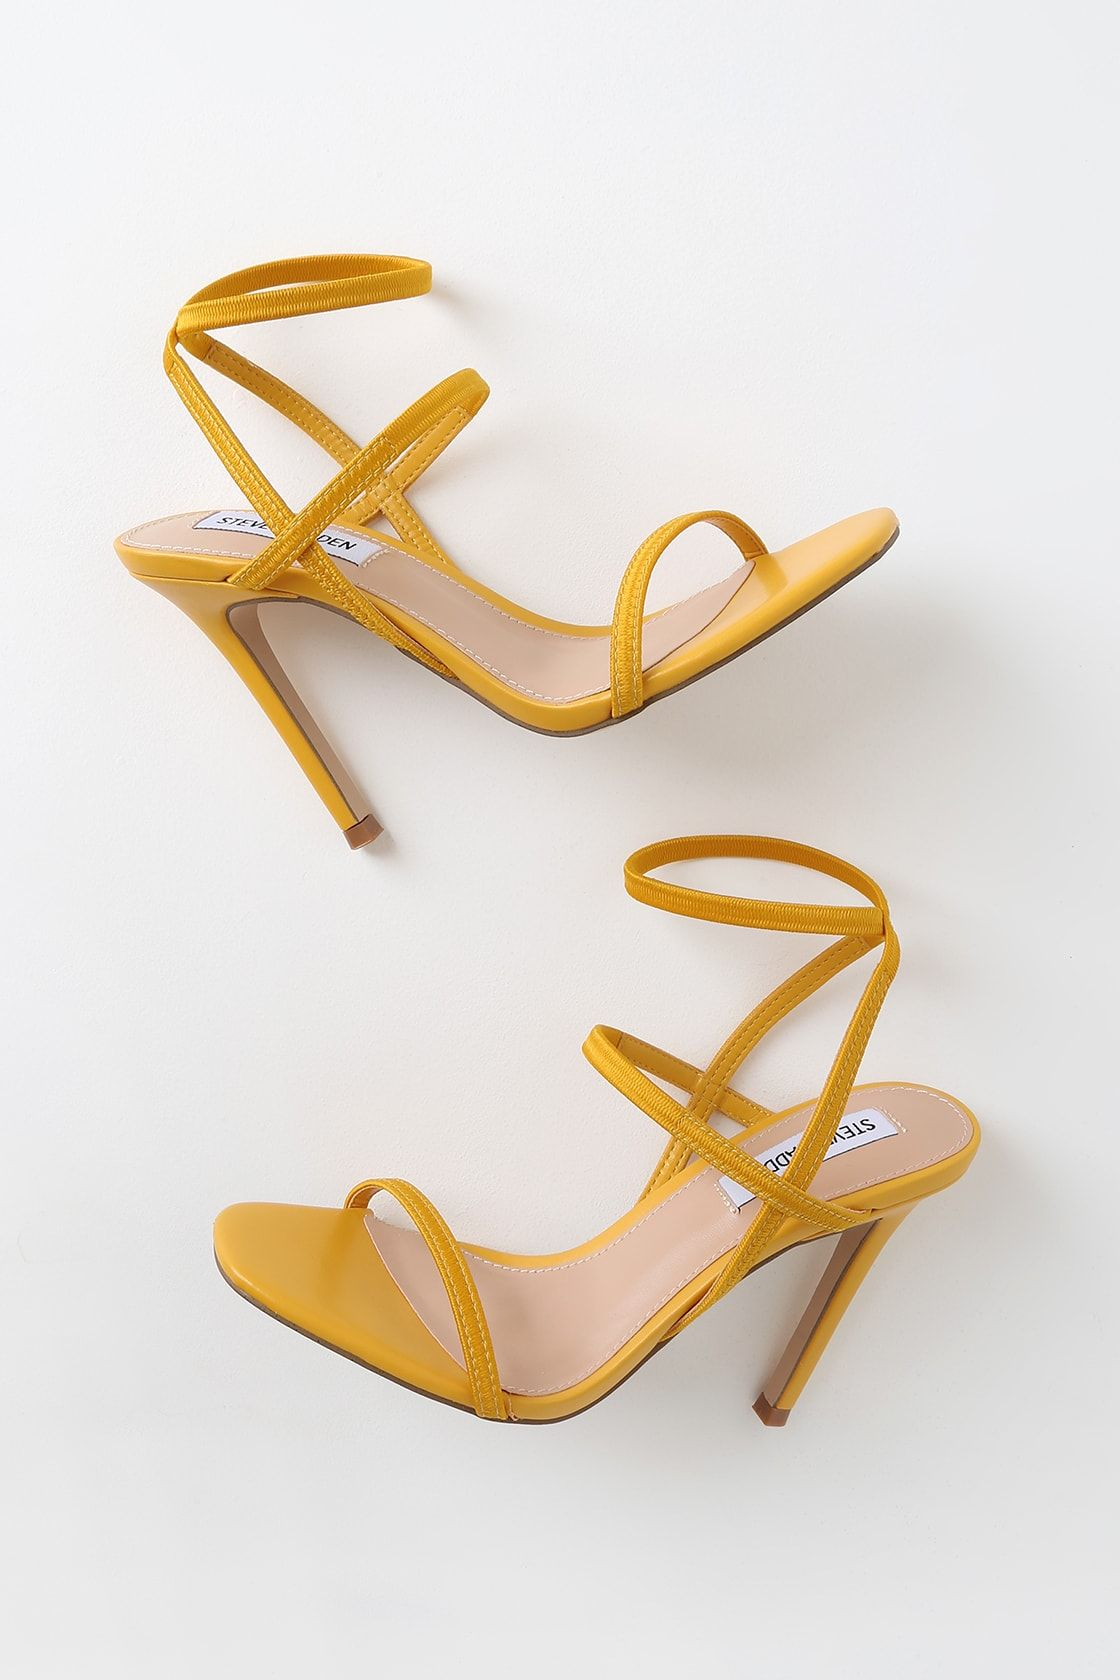 Ankle Strap High Heels Women Sandals Thick High Heel Party Wedding Summer Lady Shoes,Yellow,8.5